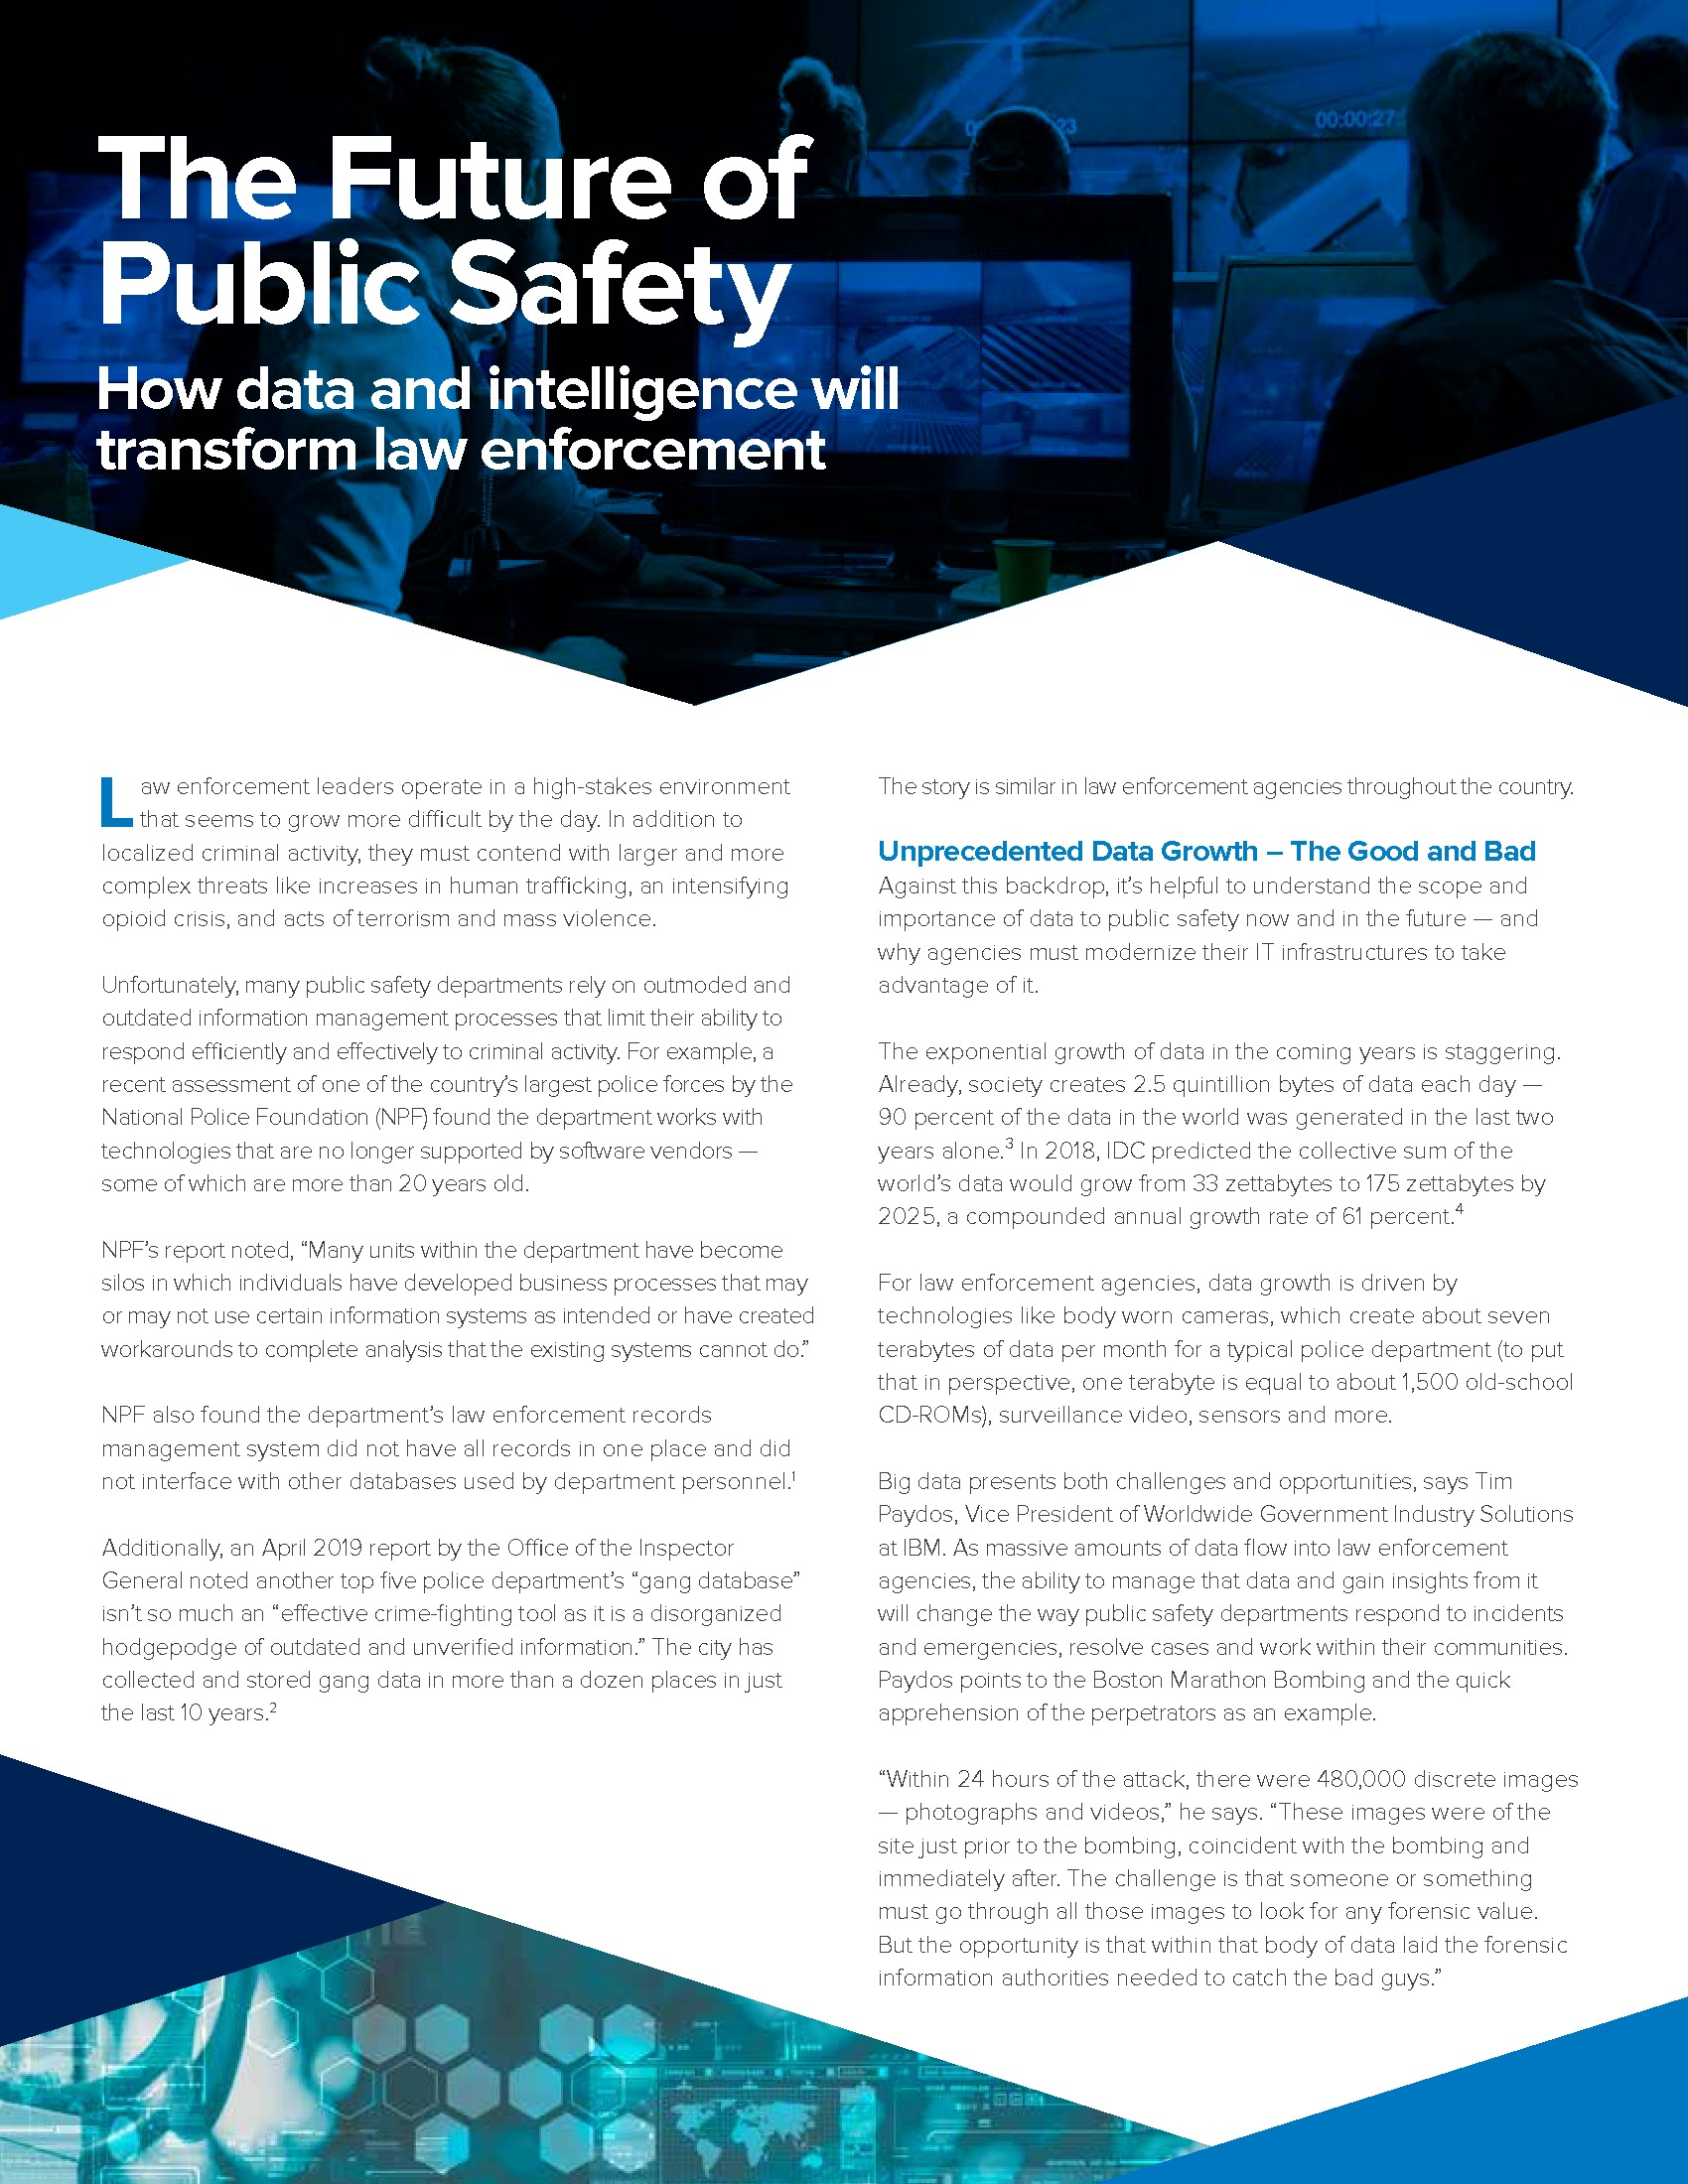 Paper: The Future of Public Safety